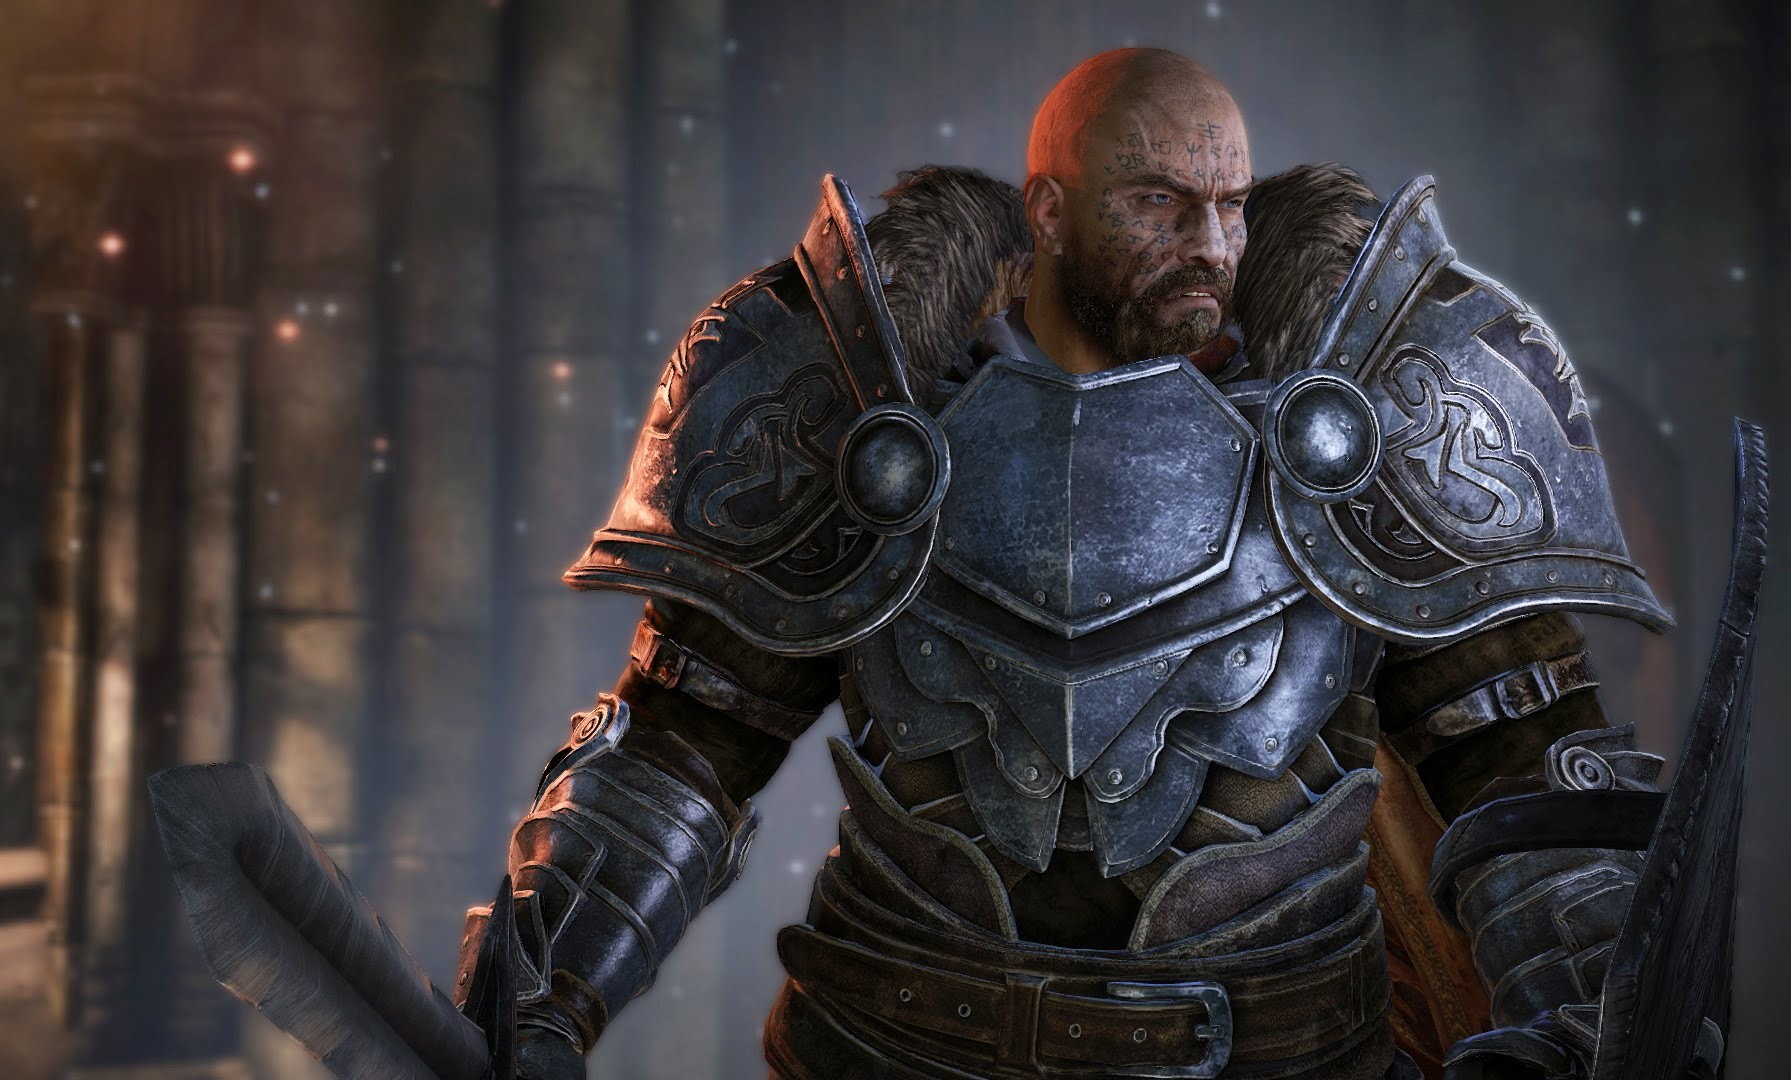 ASÍ ESTÁ EL MUNDO EN LORDS OF THE FALLEN